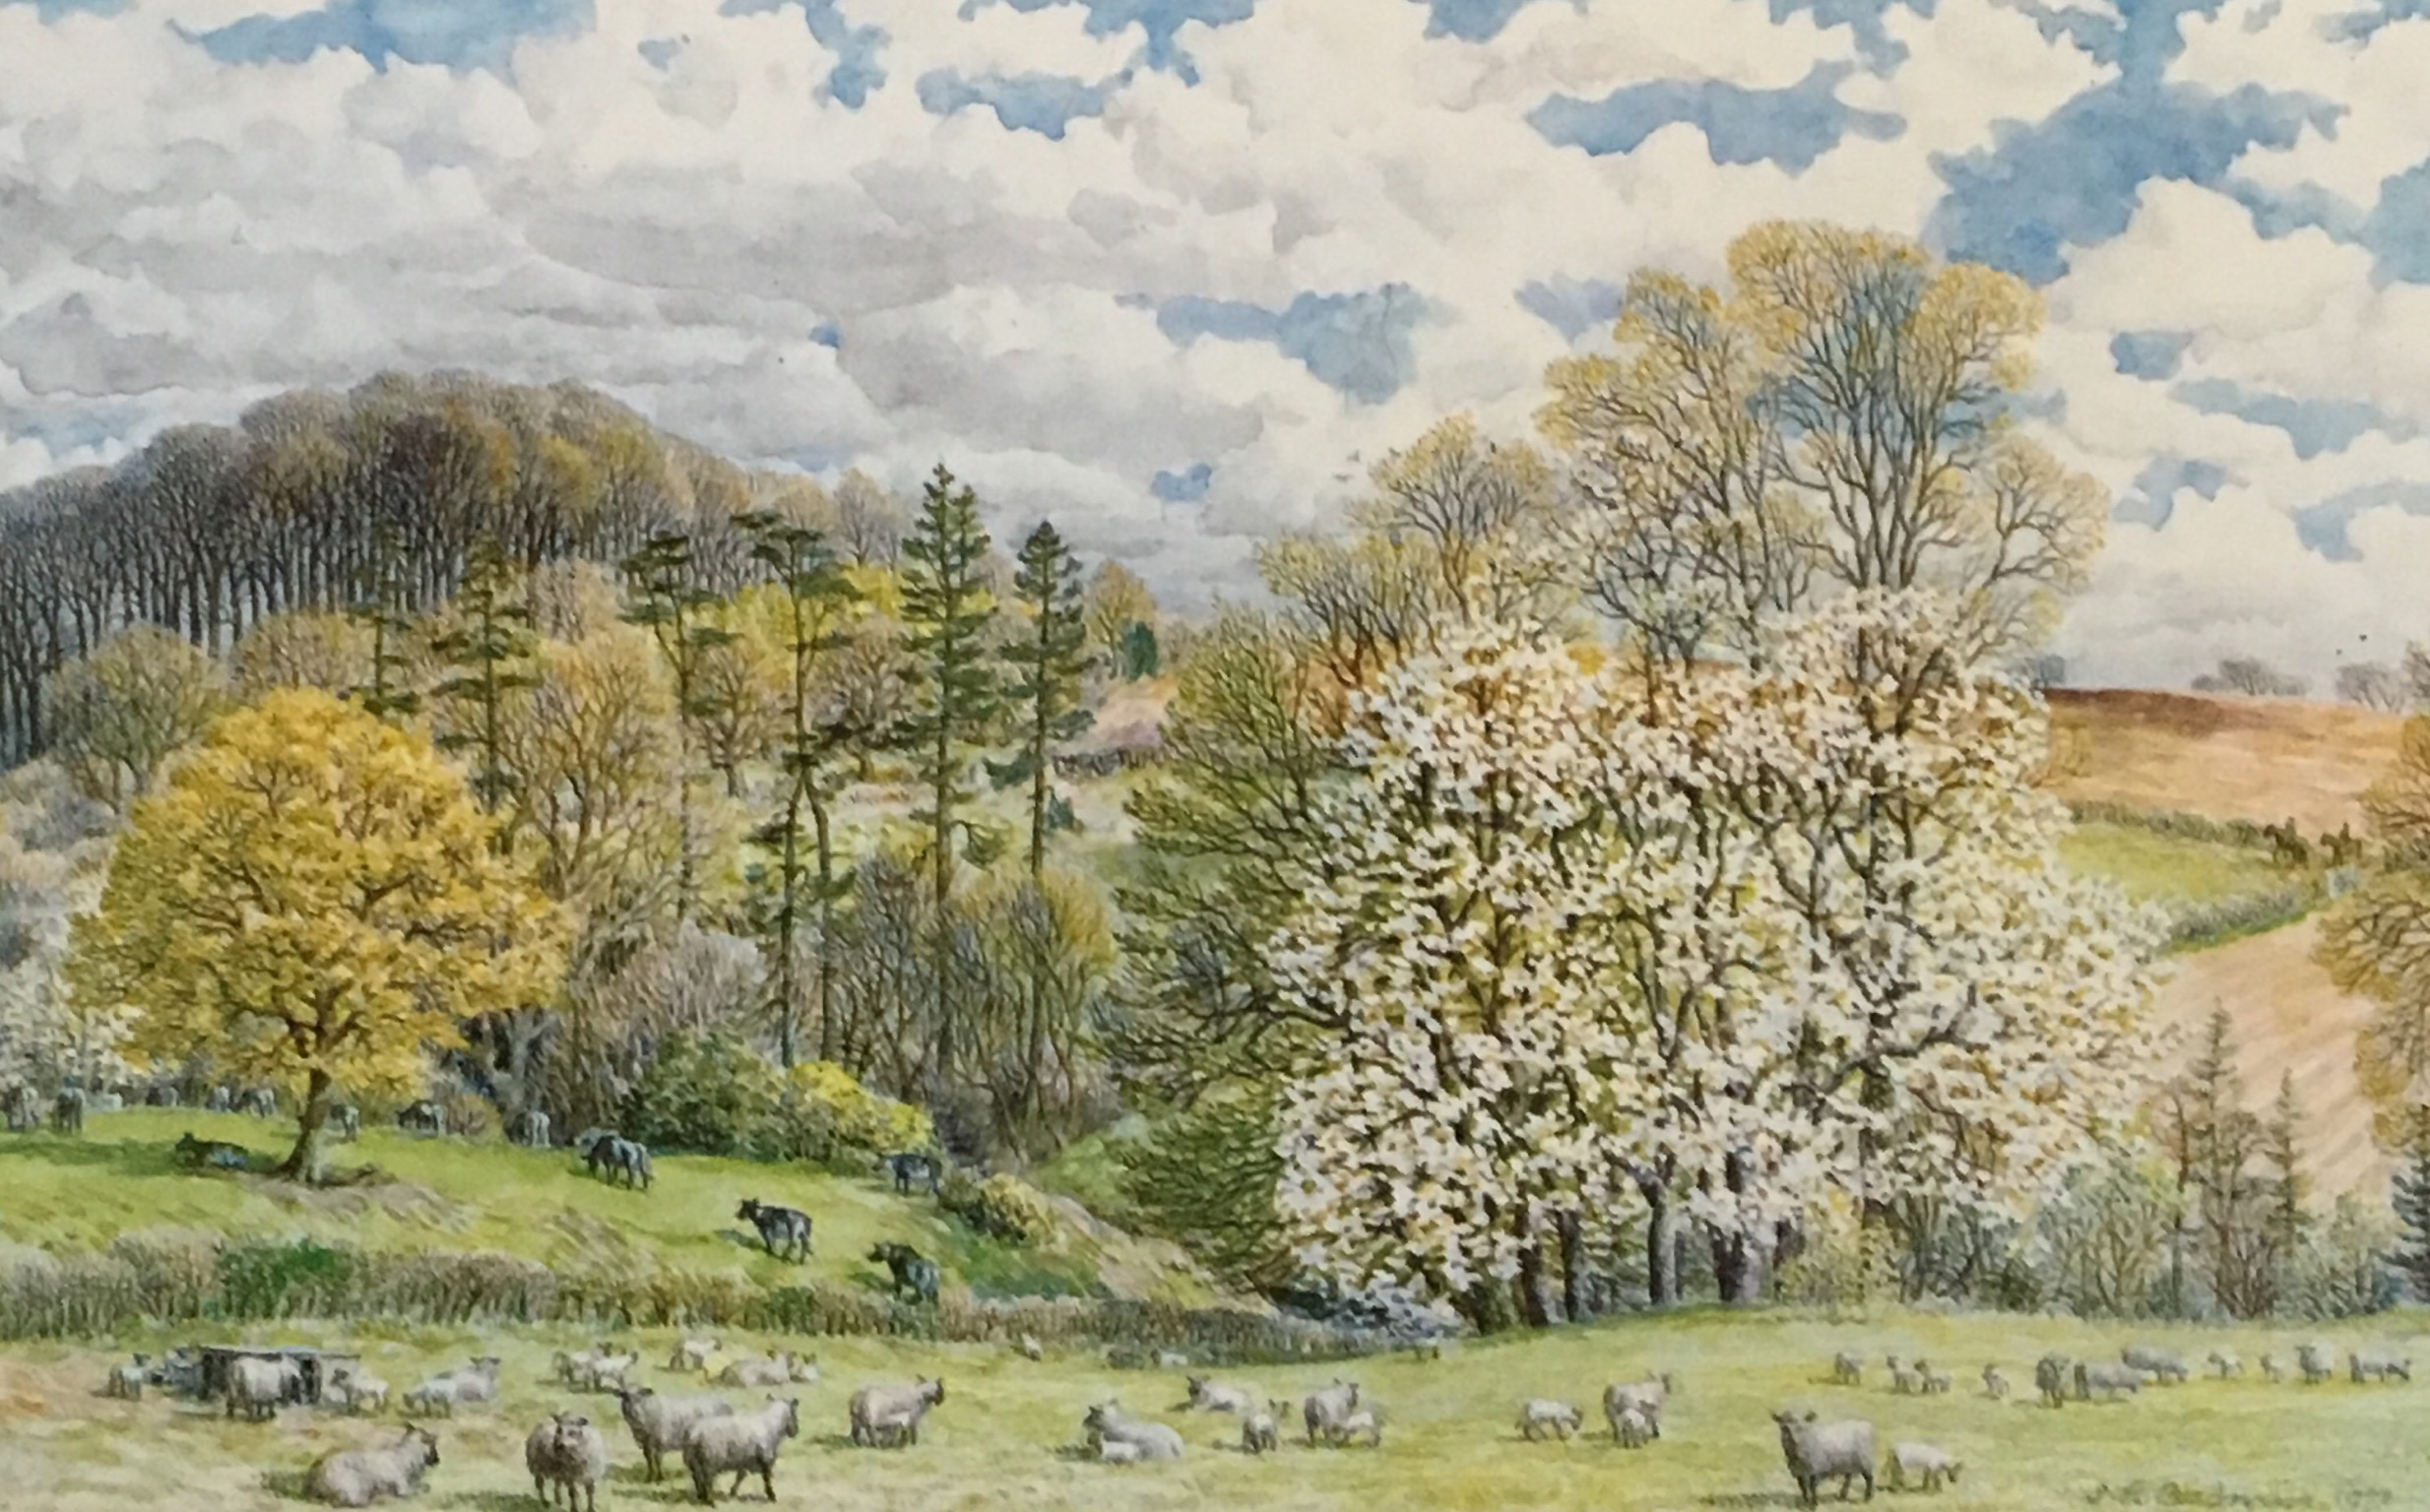 A Spring Wood Near Midhurst - by S R Badmin RWS RE AIA FSIA (1906-1989)